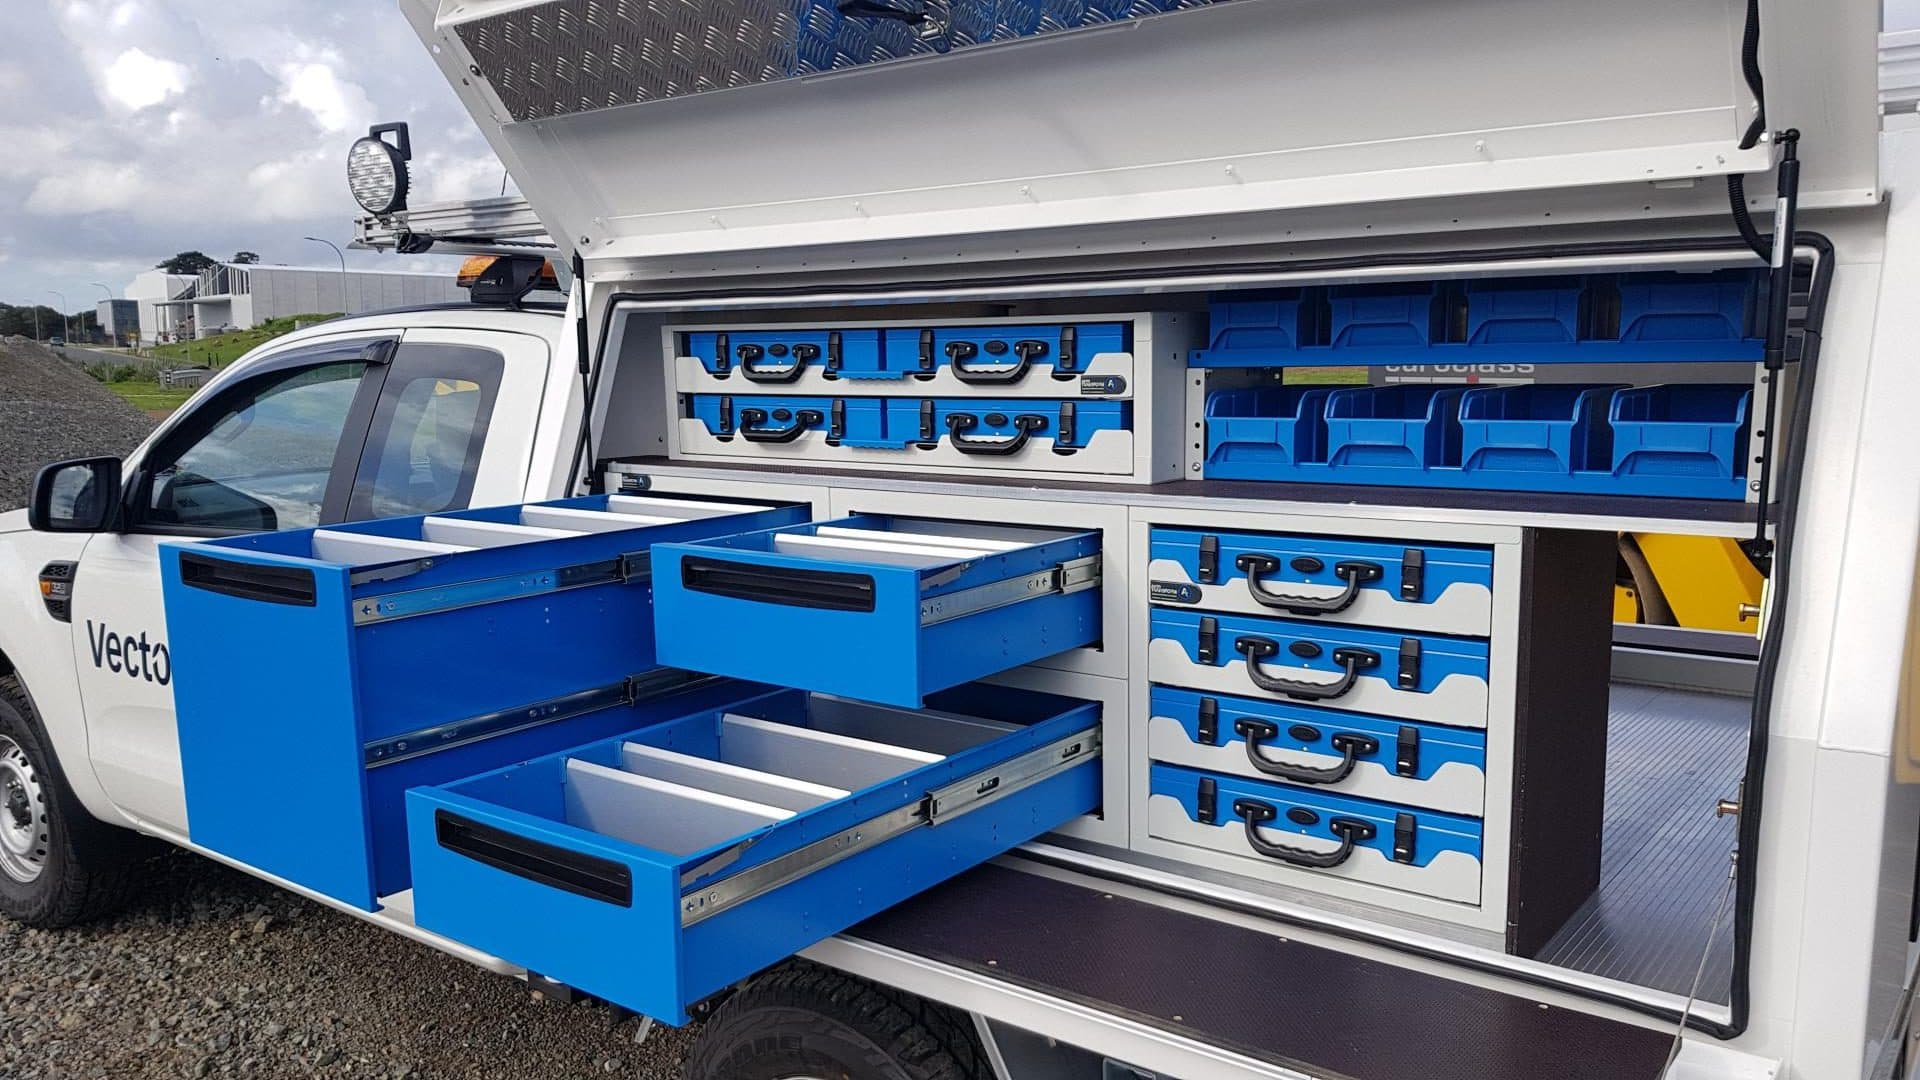 Modular plastic drawers and shelving for ute service body